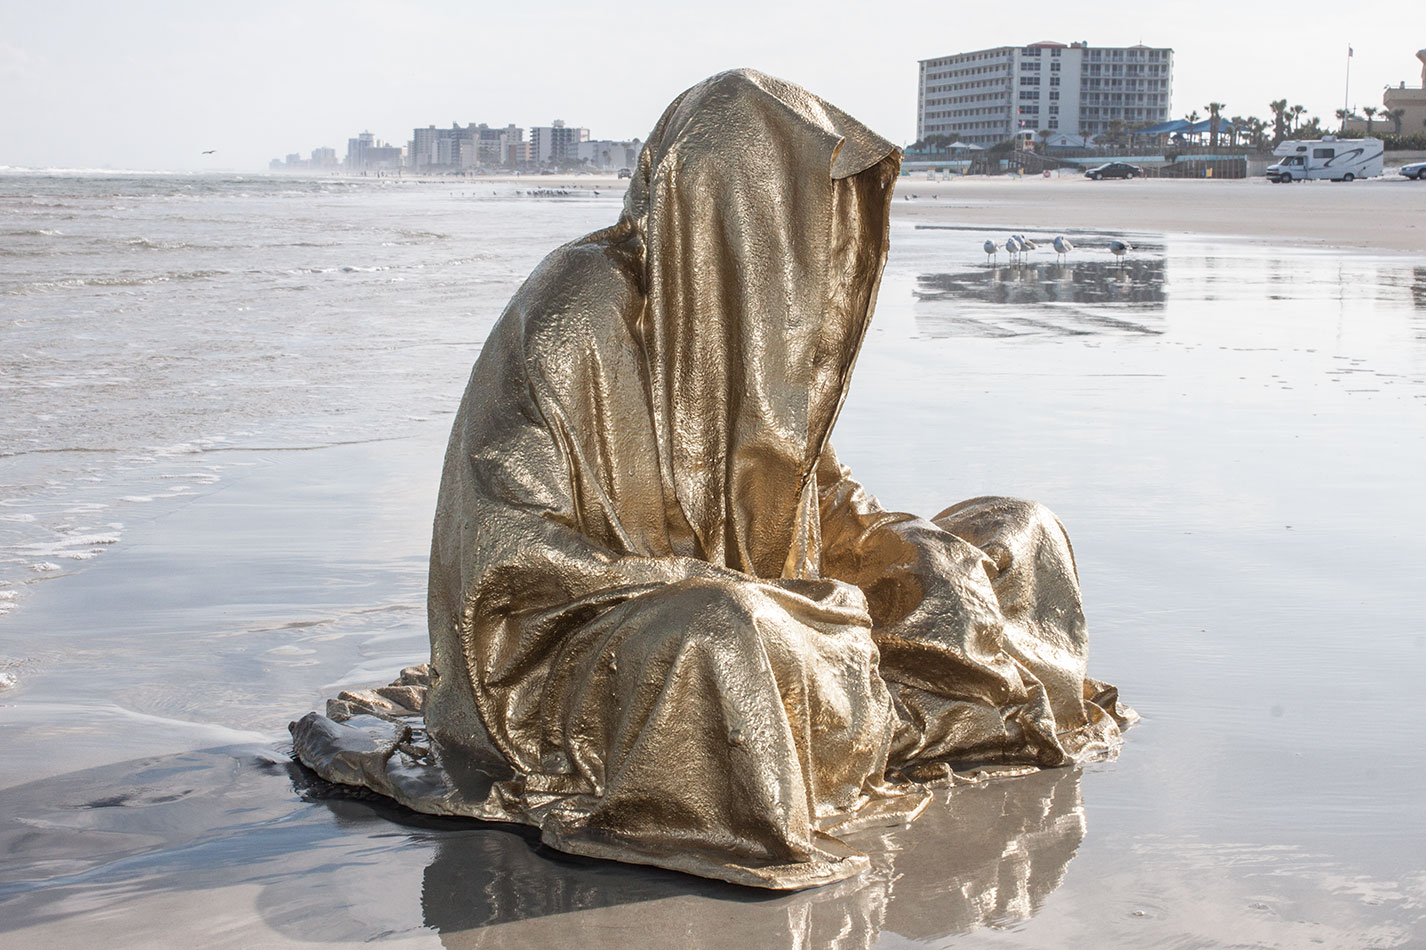 art-basel-miami-beach-fair-usa-florida-guardians-of-time-manfred-kili-kielnhofer-contemporary-fine-art-modern-arts-design-antiques-sculpture-5214